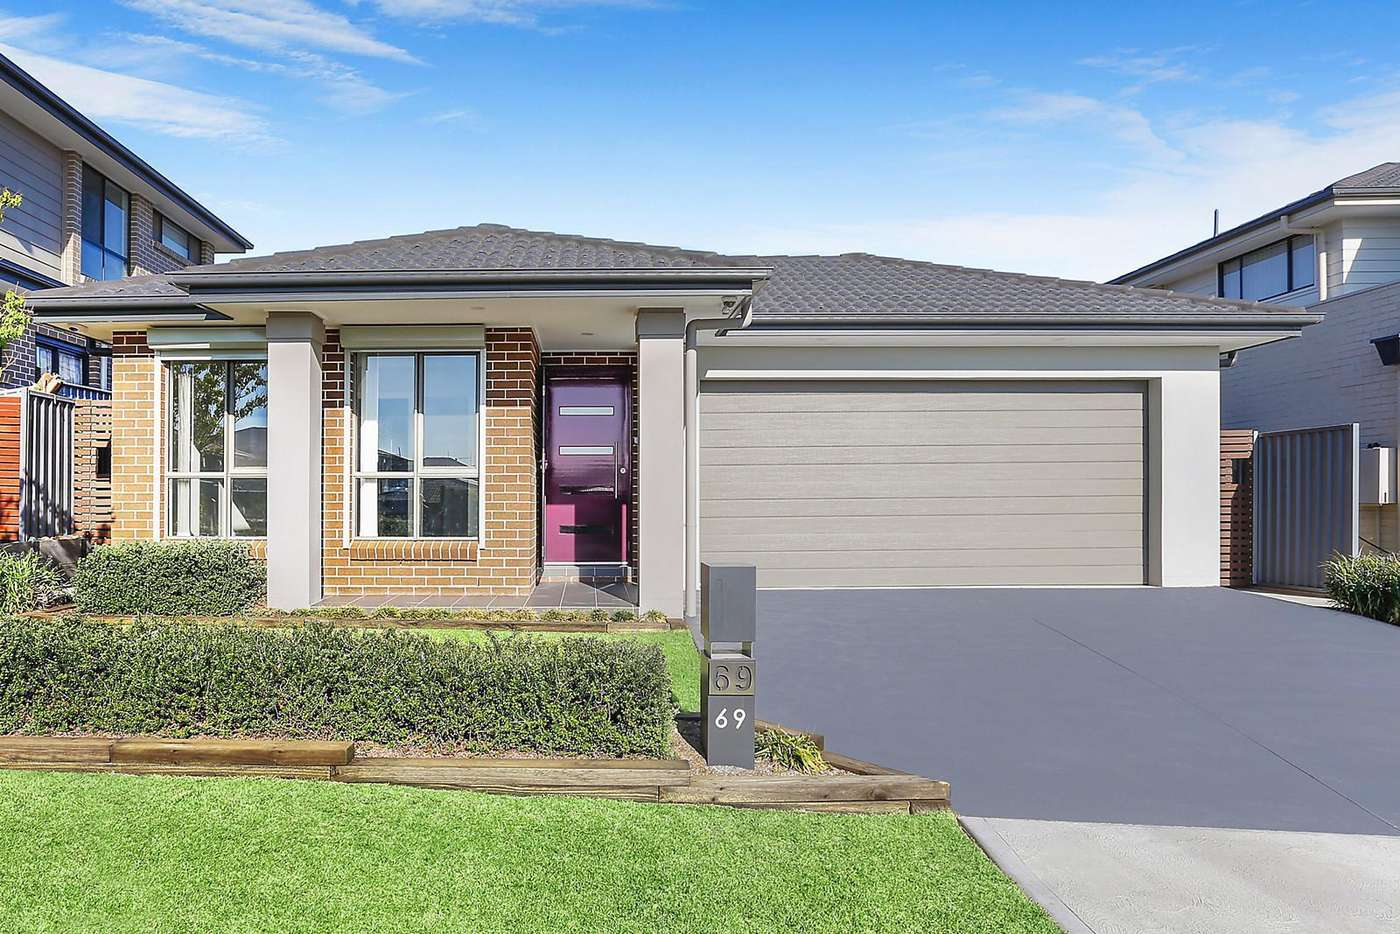 Main view of Homely house listing, 69 Lawler Drive, Oran Park NSW 2570